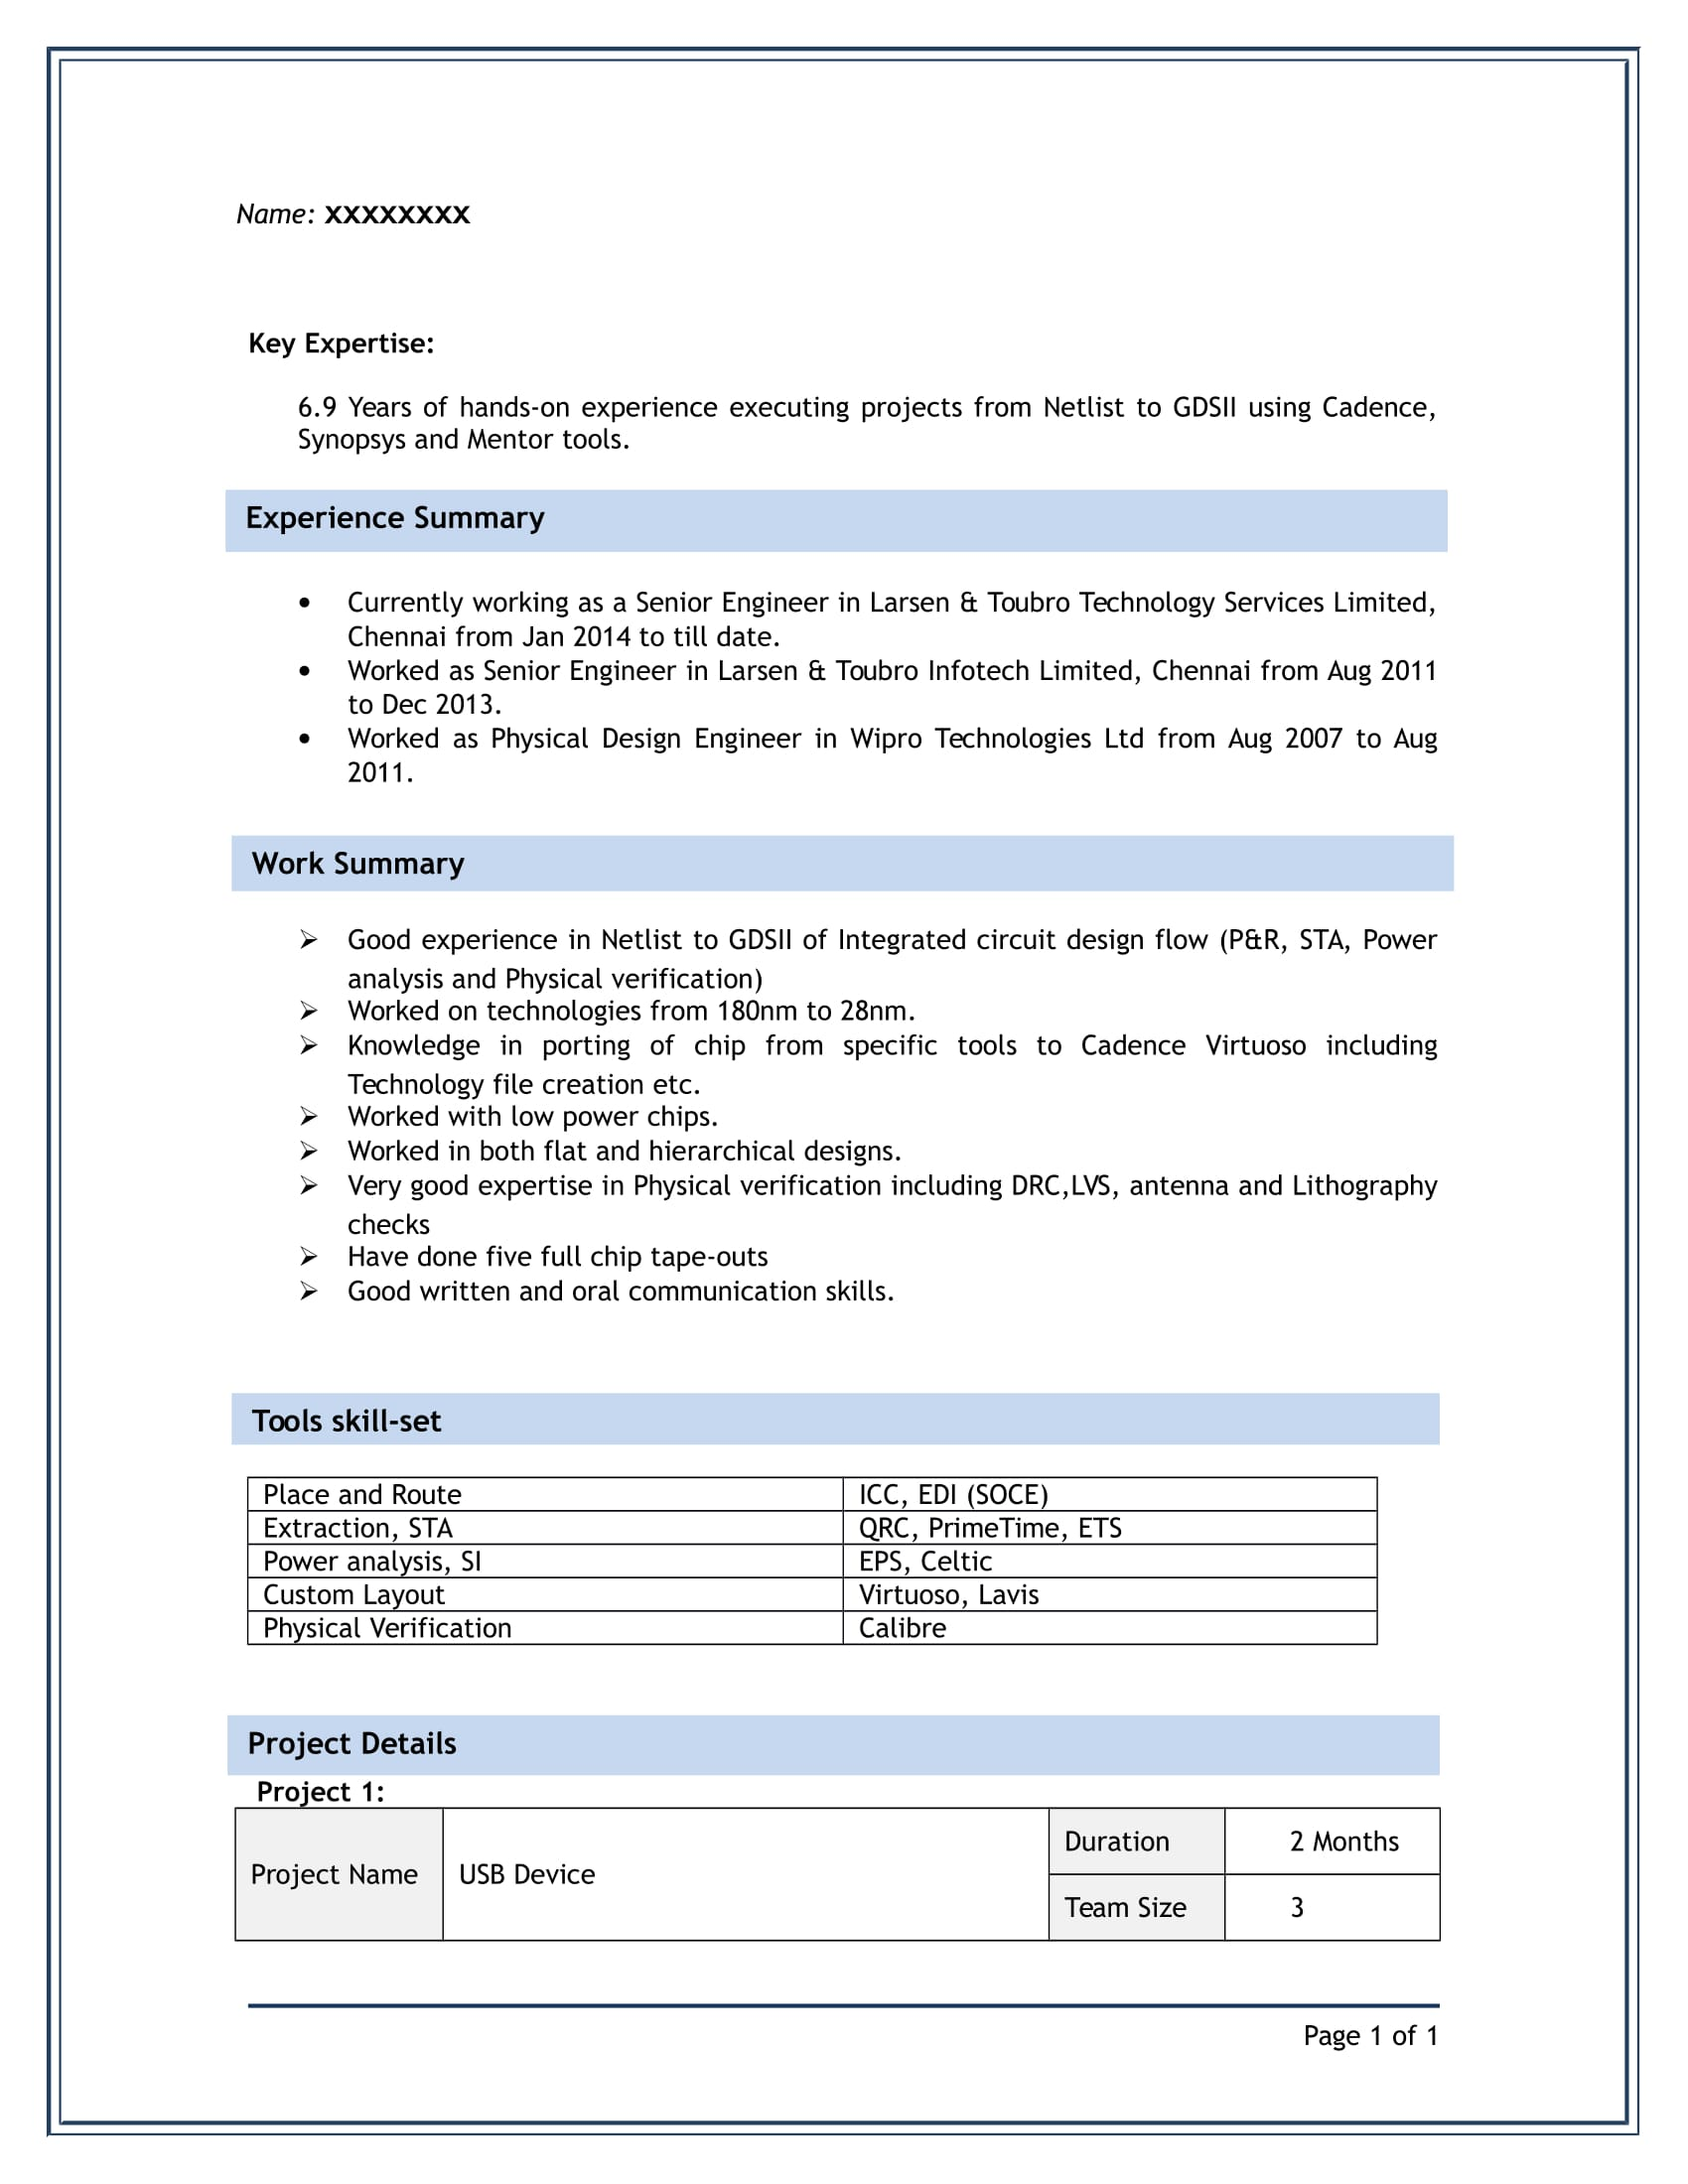 pd-sample-resume